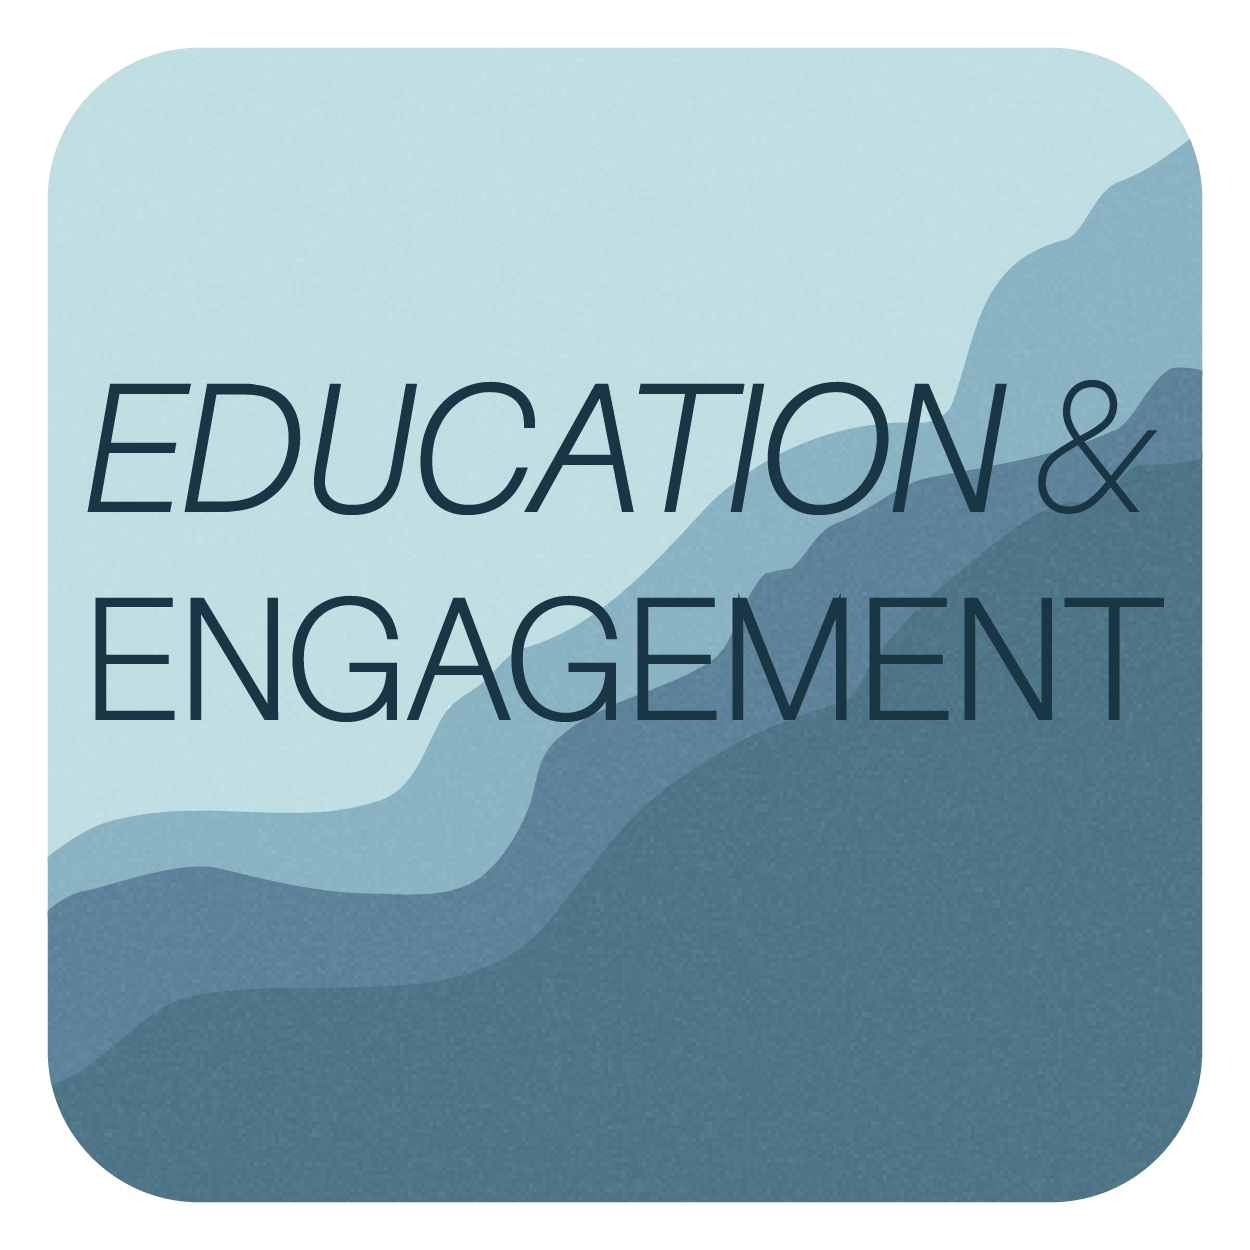 Technology Education and Engagement